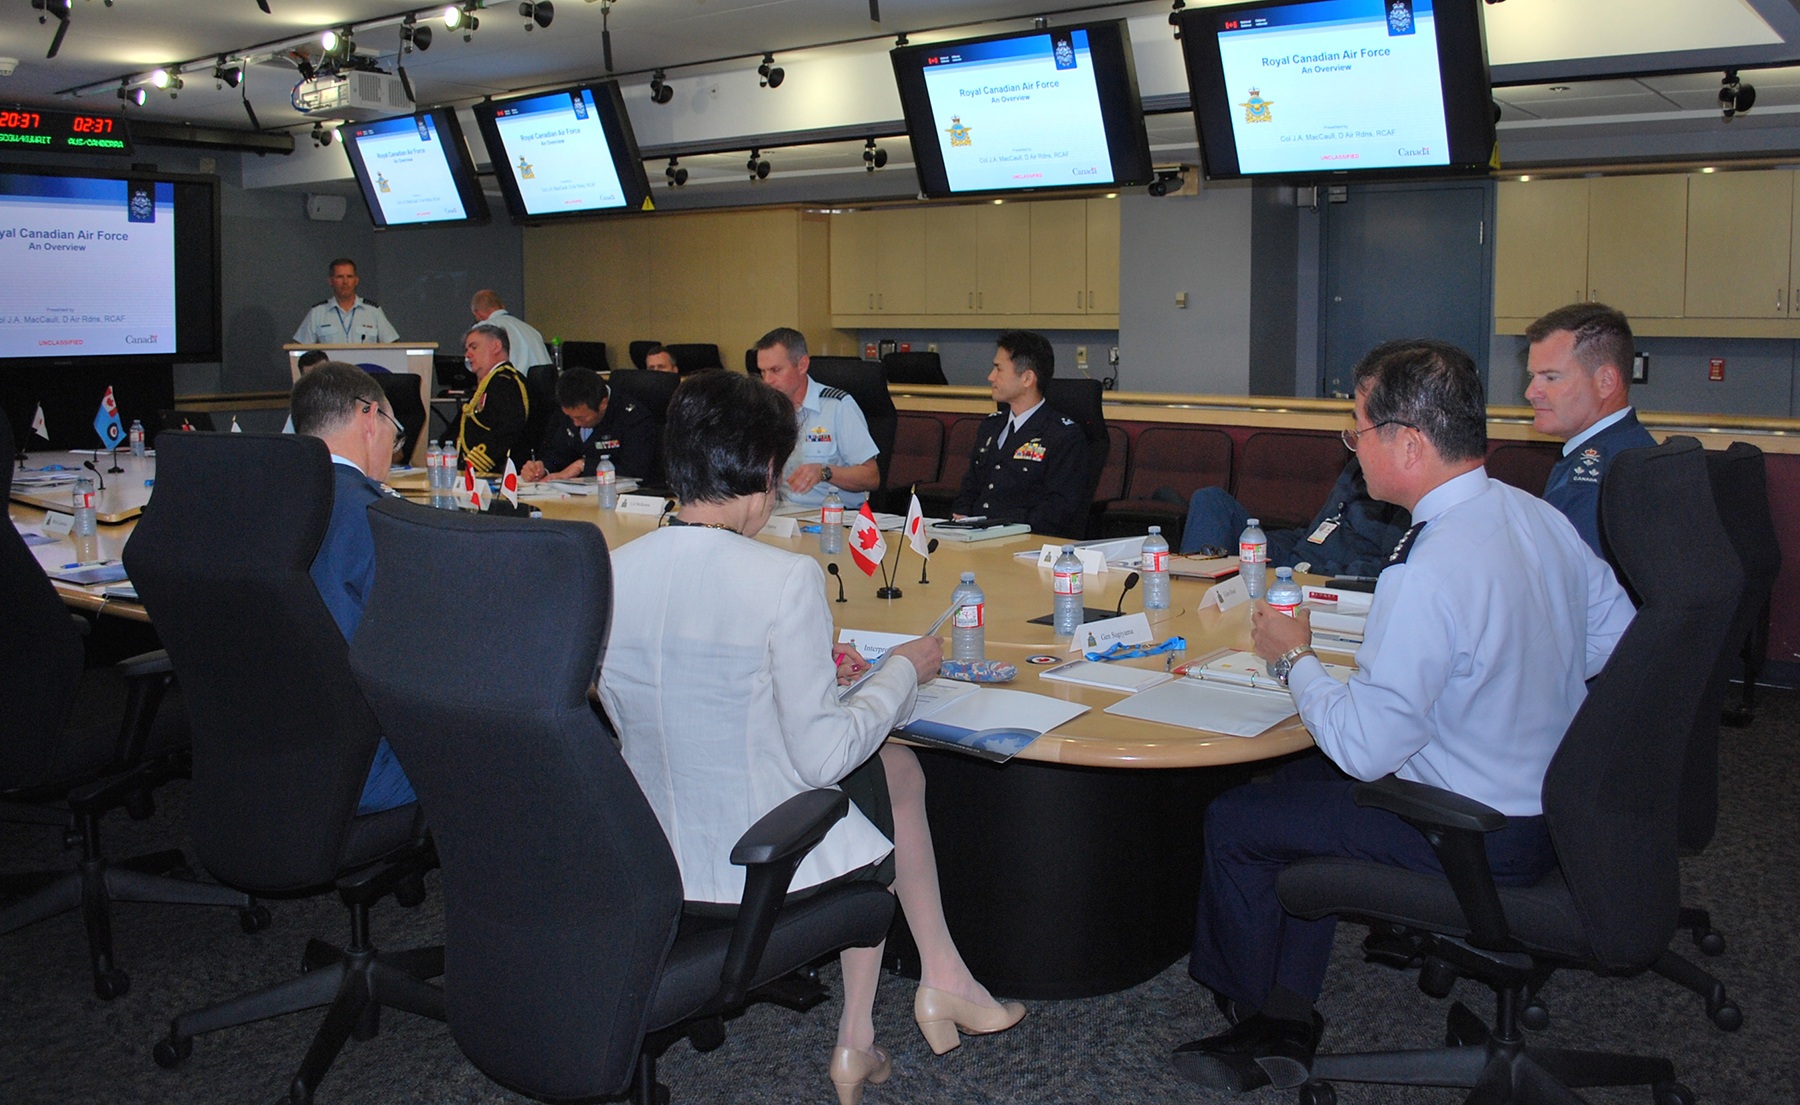 Lieutenant-General Michael Hood (right), Commander Royal Canadian Air Force; General Yoshiyuki Sugiyama (second right), Chief of Staff, Japan Air Self-Defense Force; and representatives of the Canadian Armed Forces and the Japan Air Self-Defense Force participate in an information session and discussion on September 22, 2017, at Canadian Joint Operations Command Headquarters in Ottawa, Ontario. PHOTO: Submitted